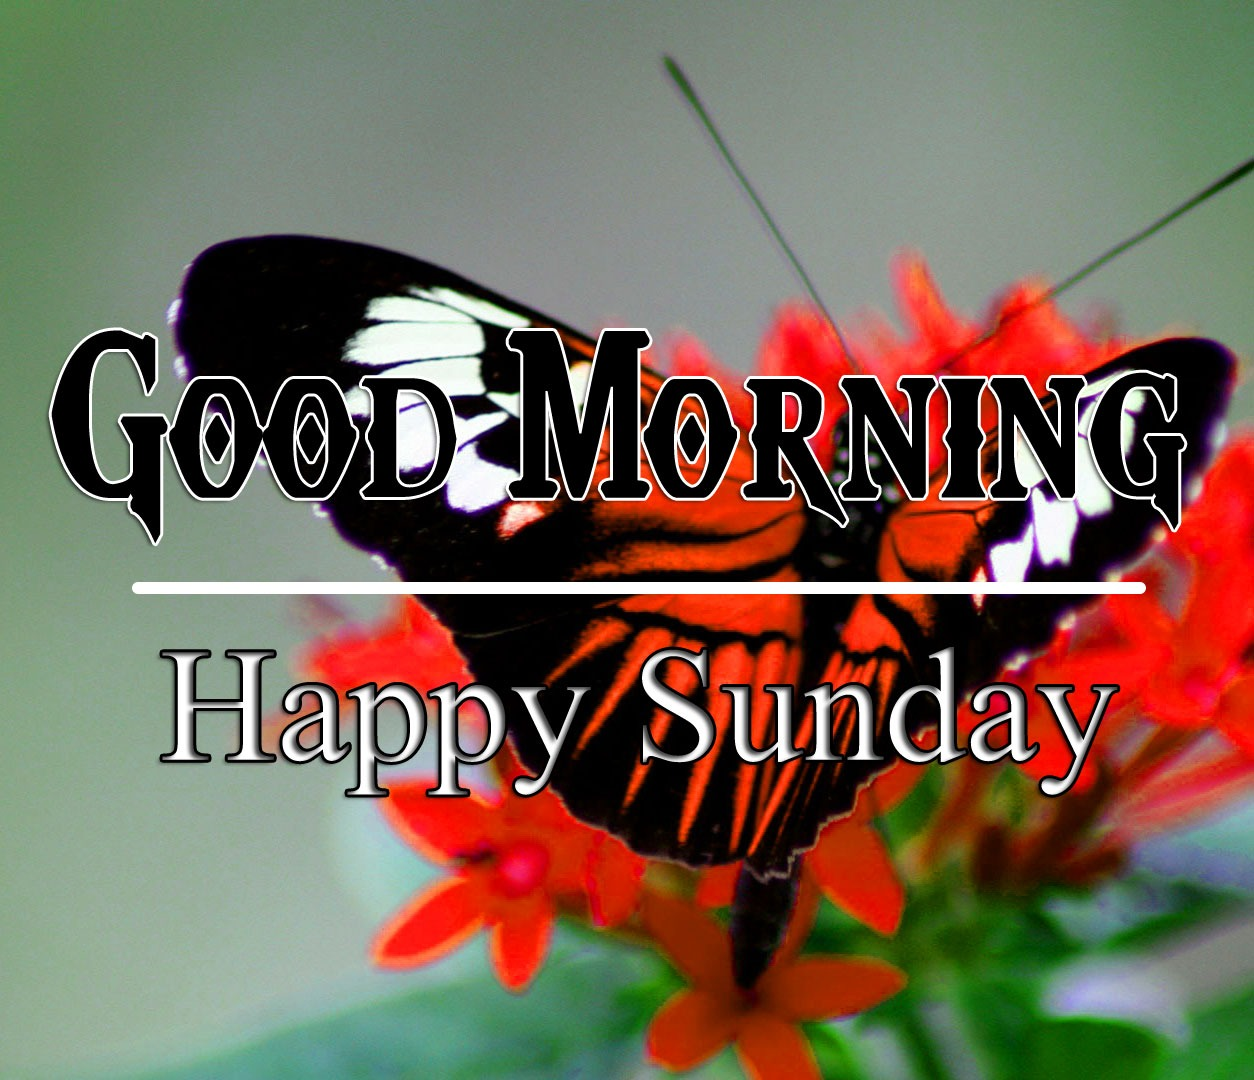 Butterfly sunday good morning Images